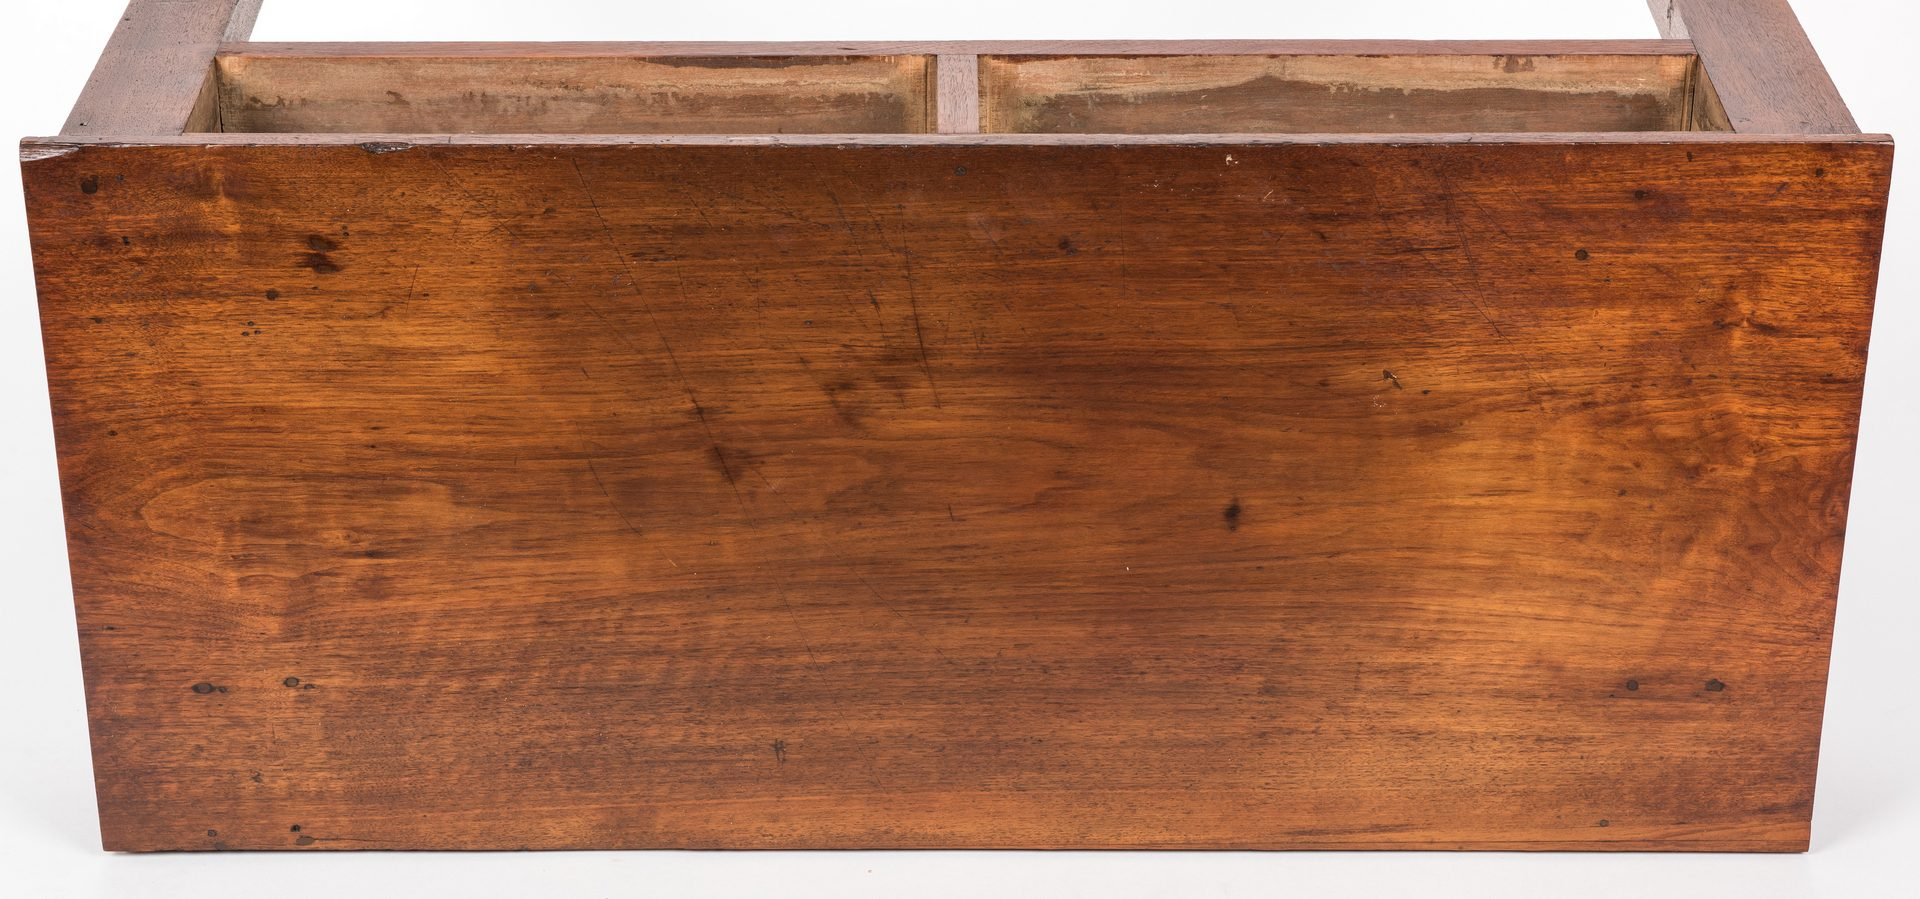 Lot 156: Middle TN Walnut Slab or Huntboard